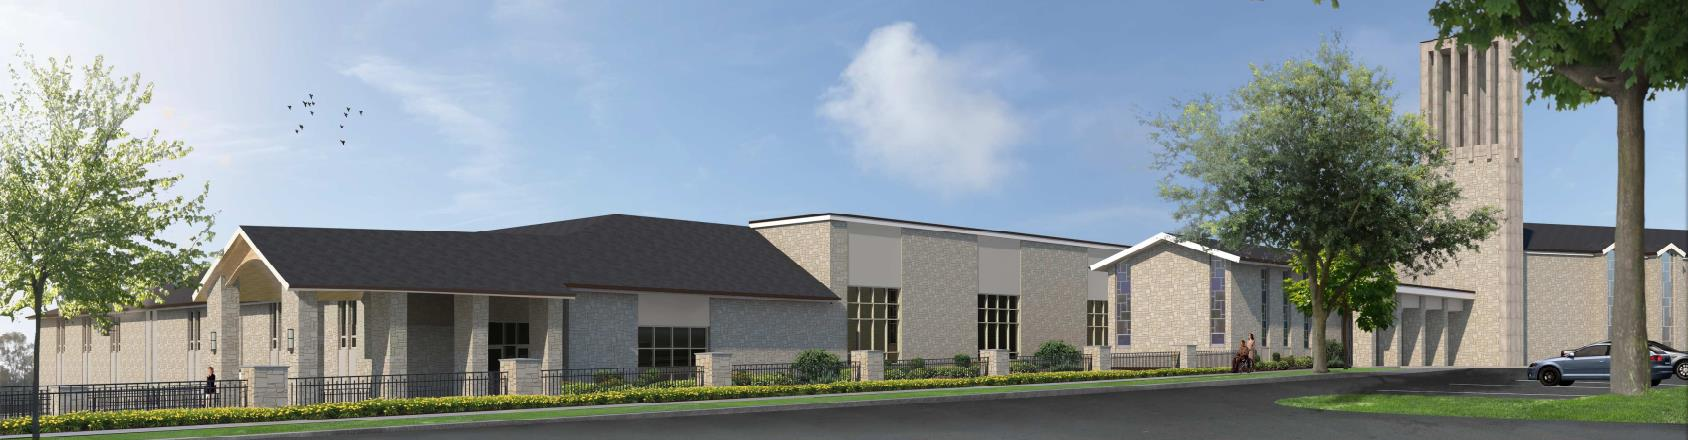 3D Rendering of New Building Exterior